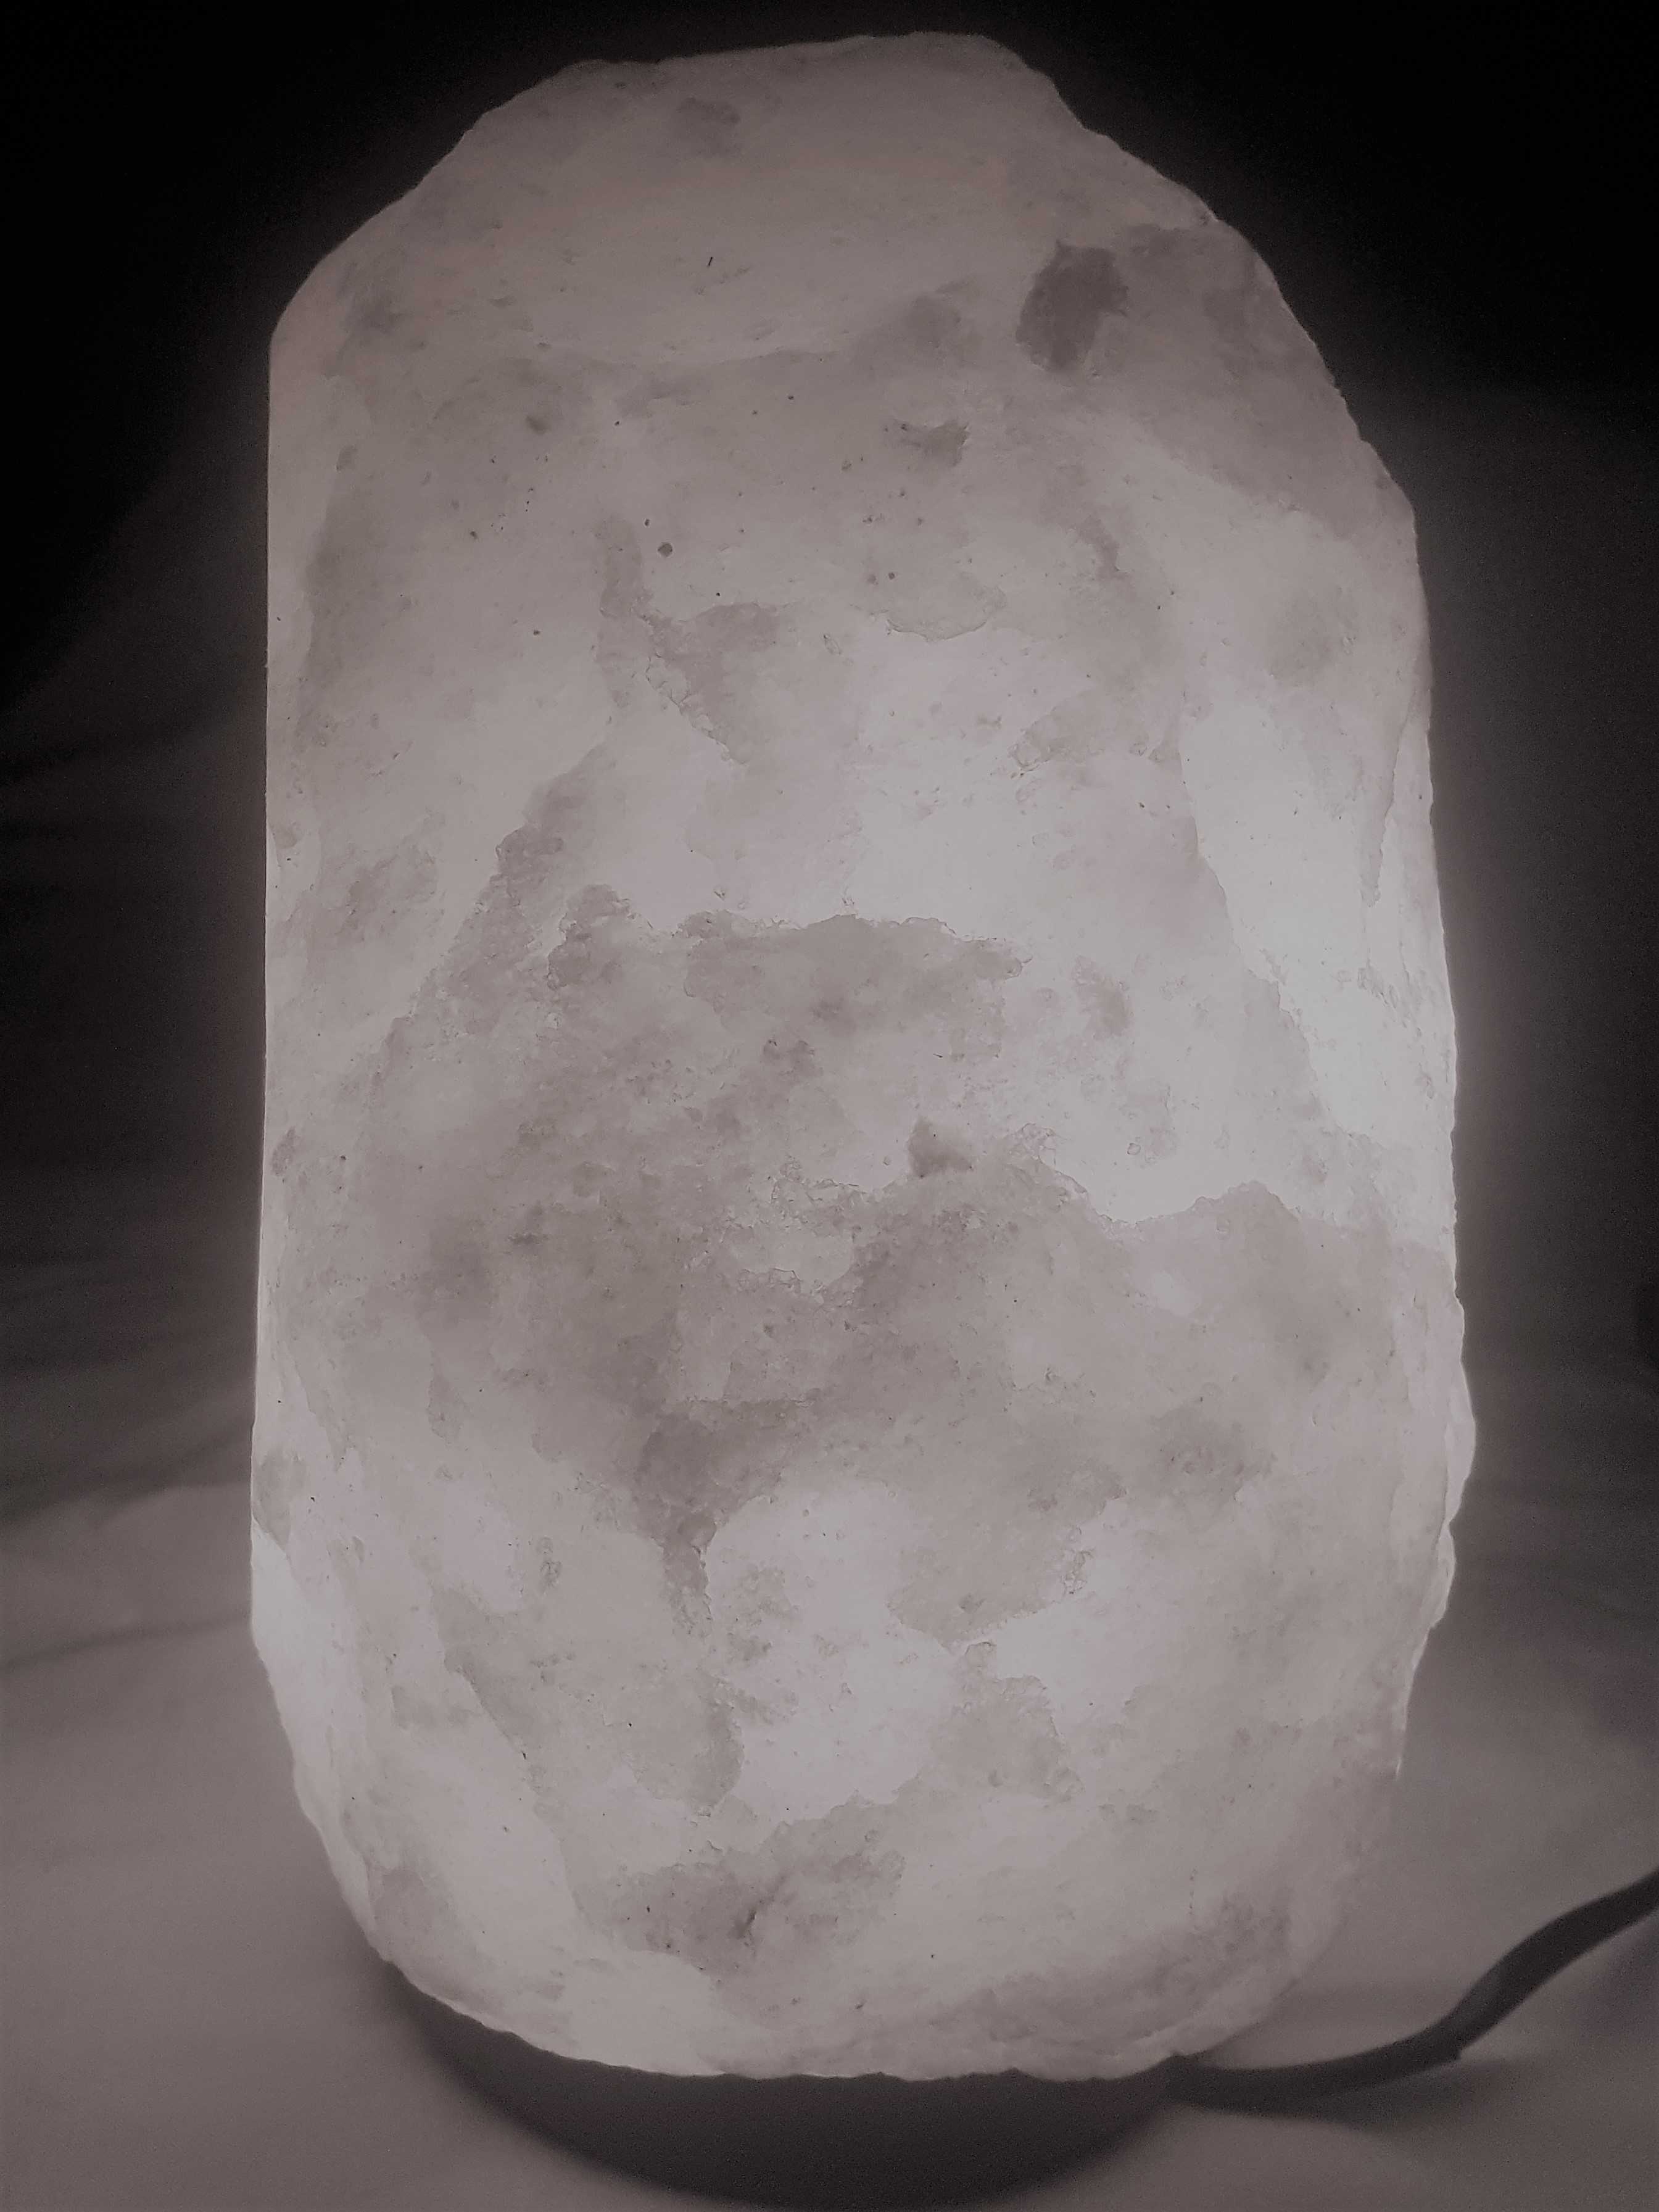 4-6kg White Salt Lamps - Rosewood Base with 7watt Cable and Glob